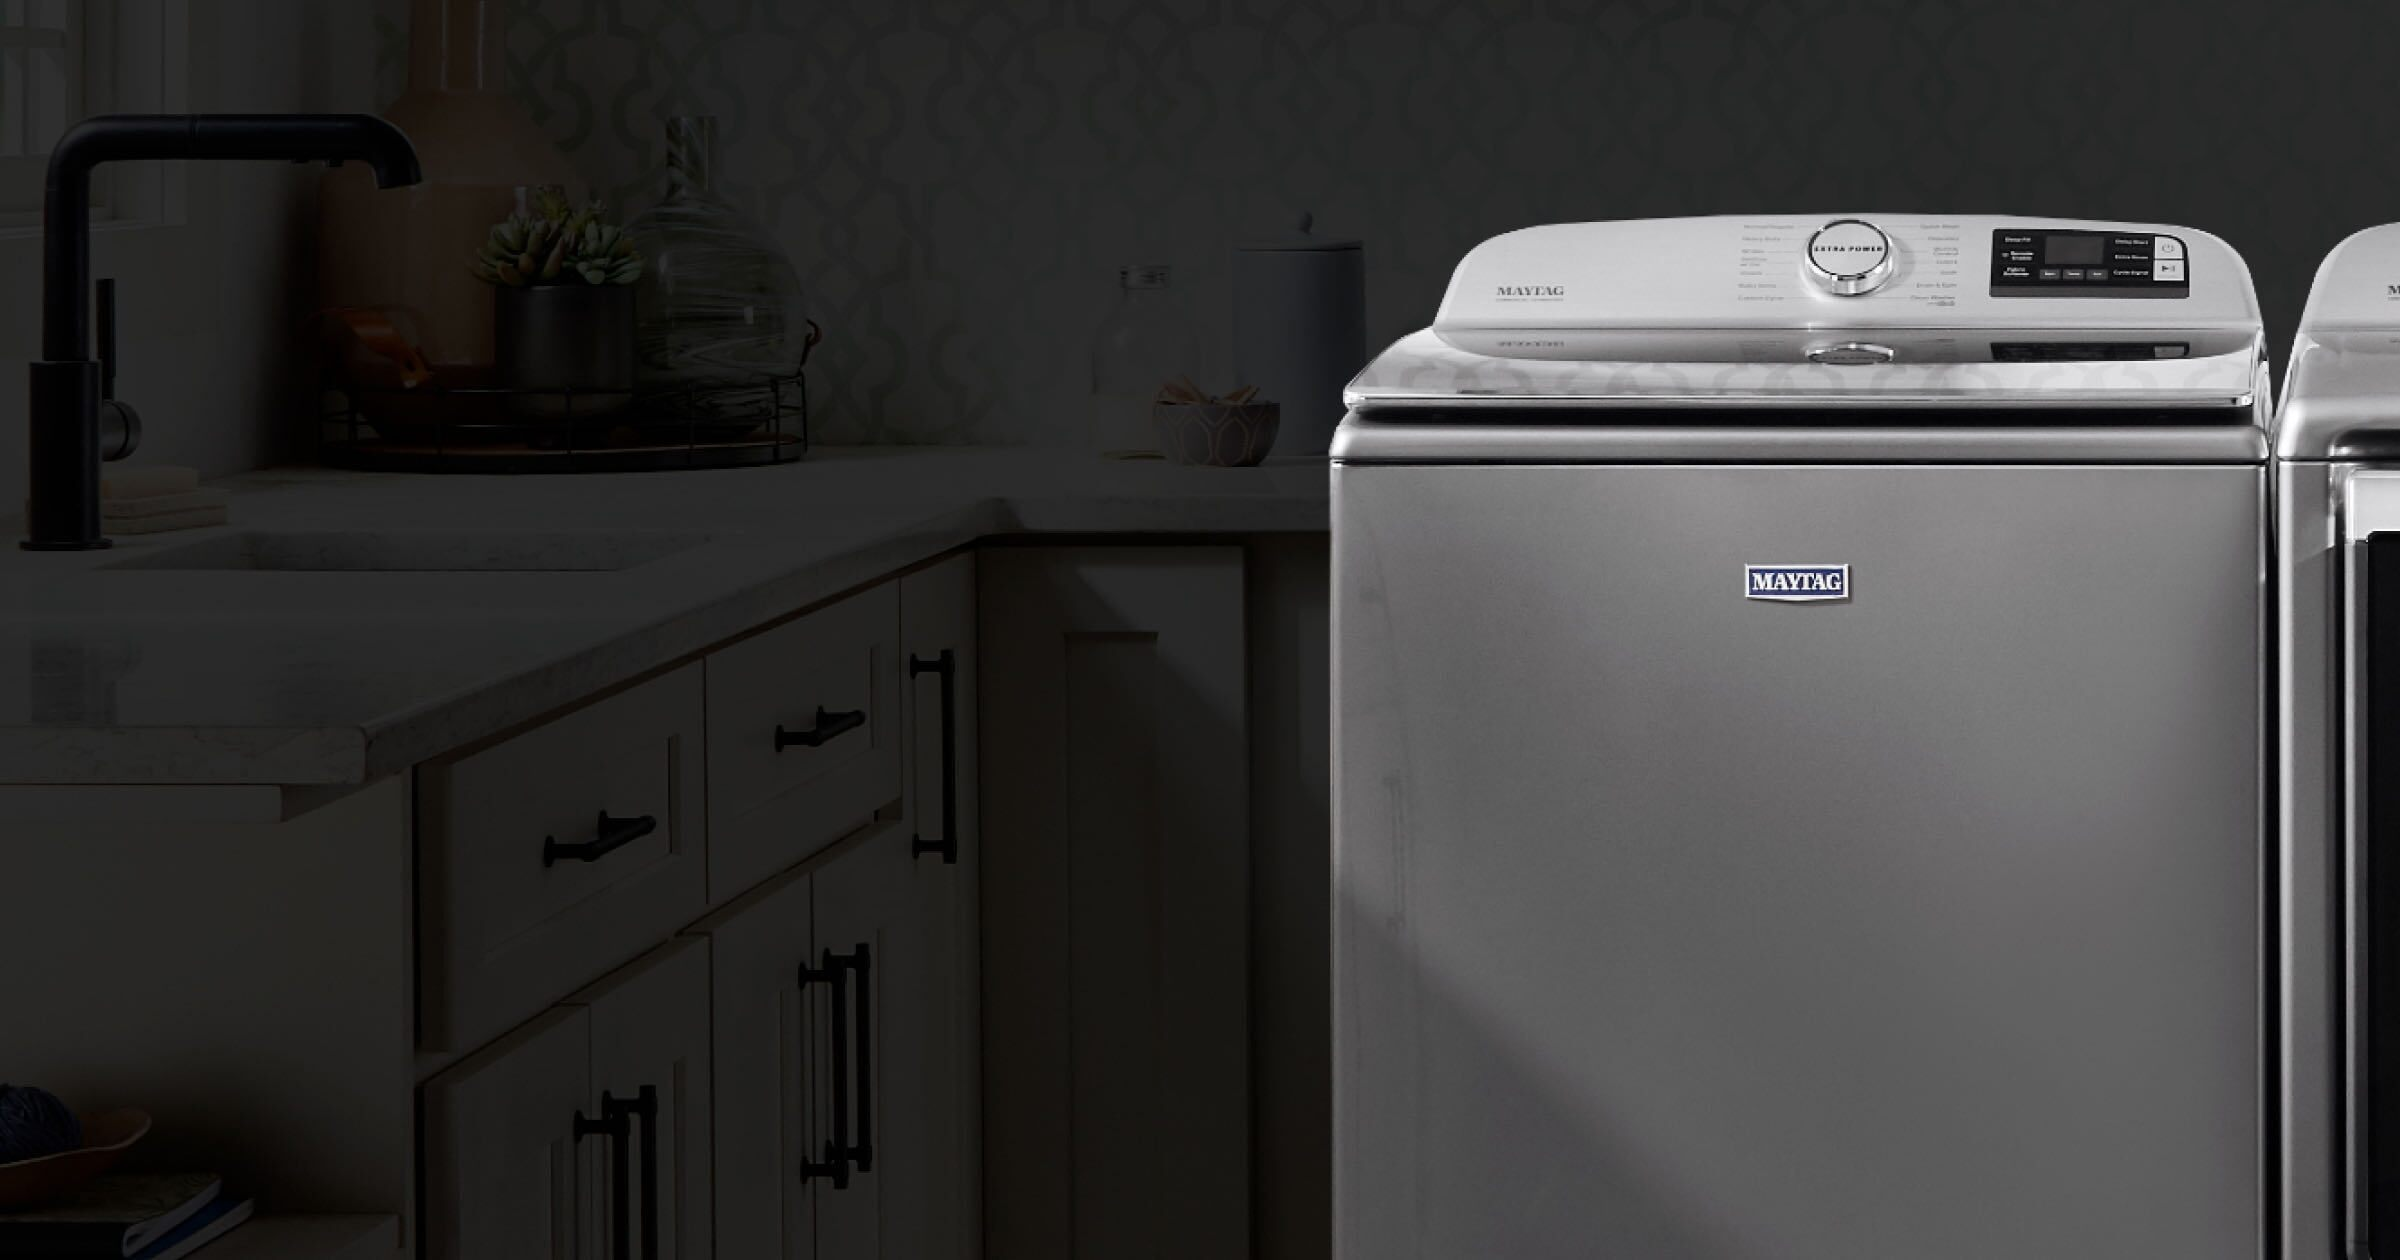 Washing Machines Powerful And Dependable Maytag